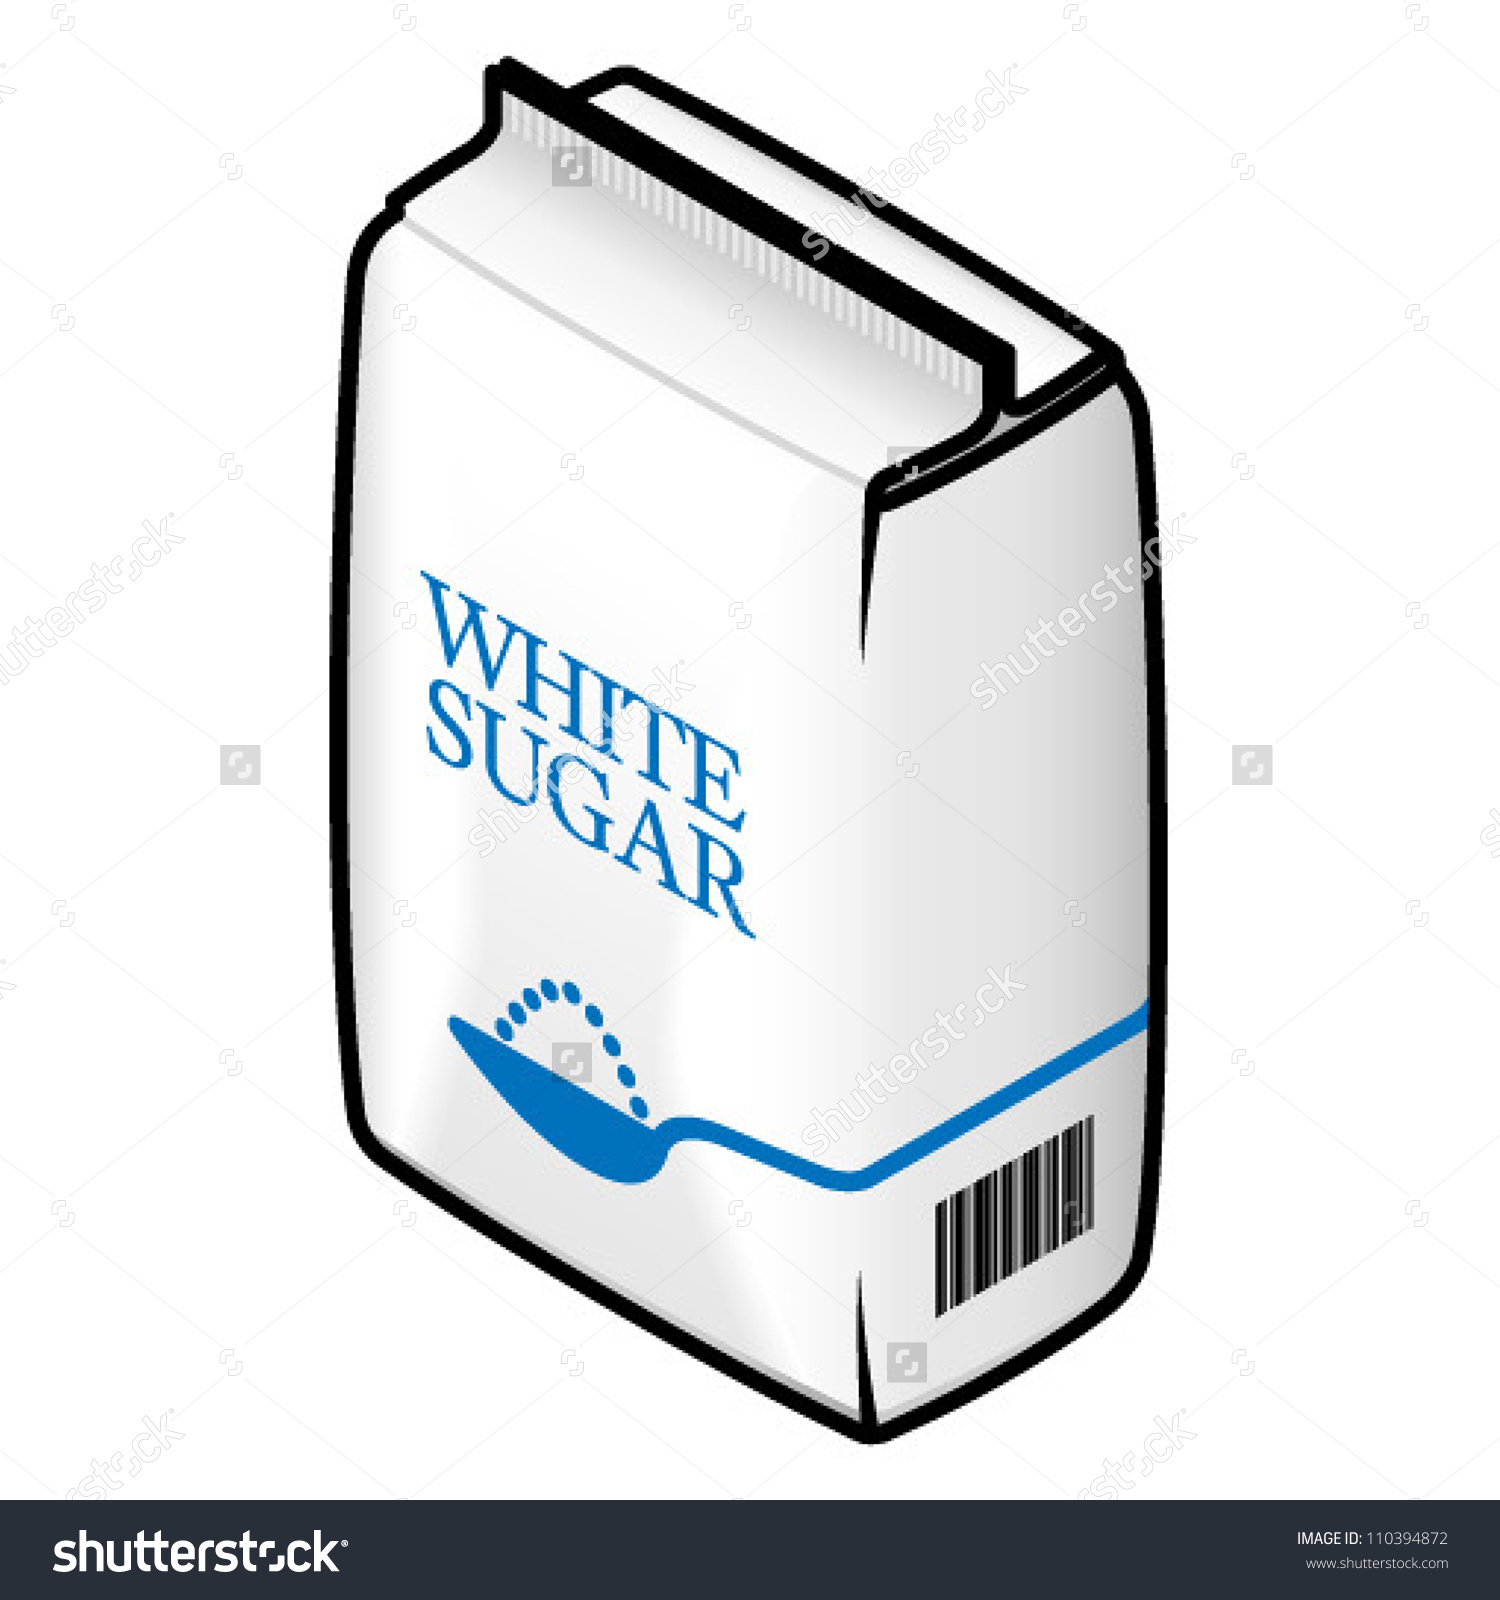 Bag White Refined Sugar Stock Vector 110394872.